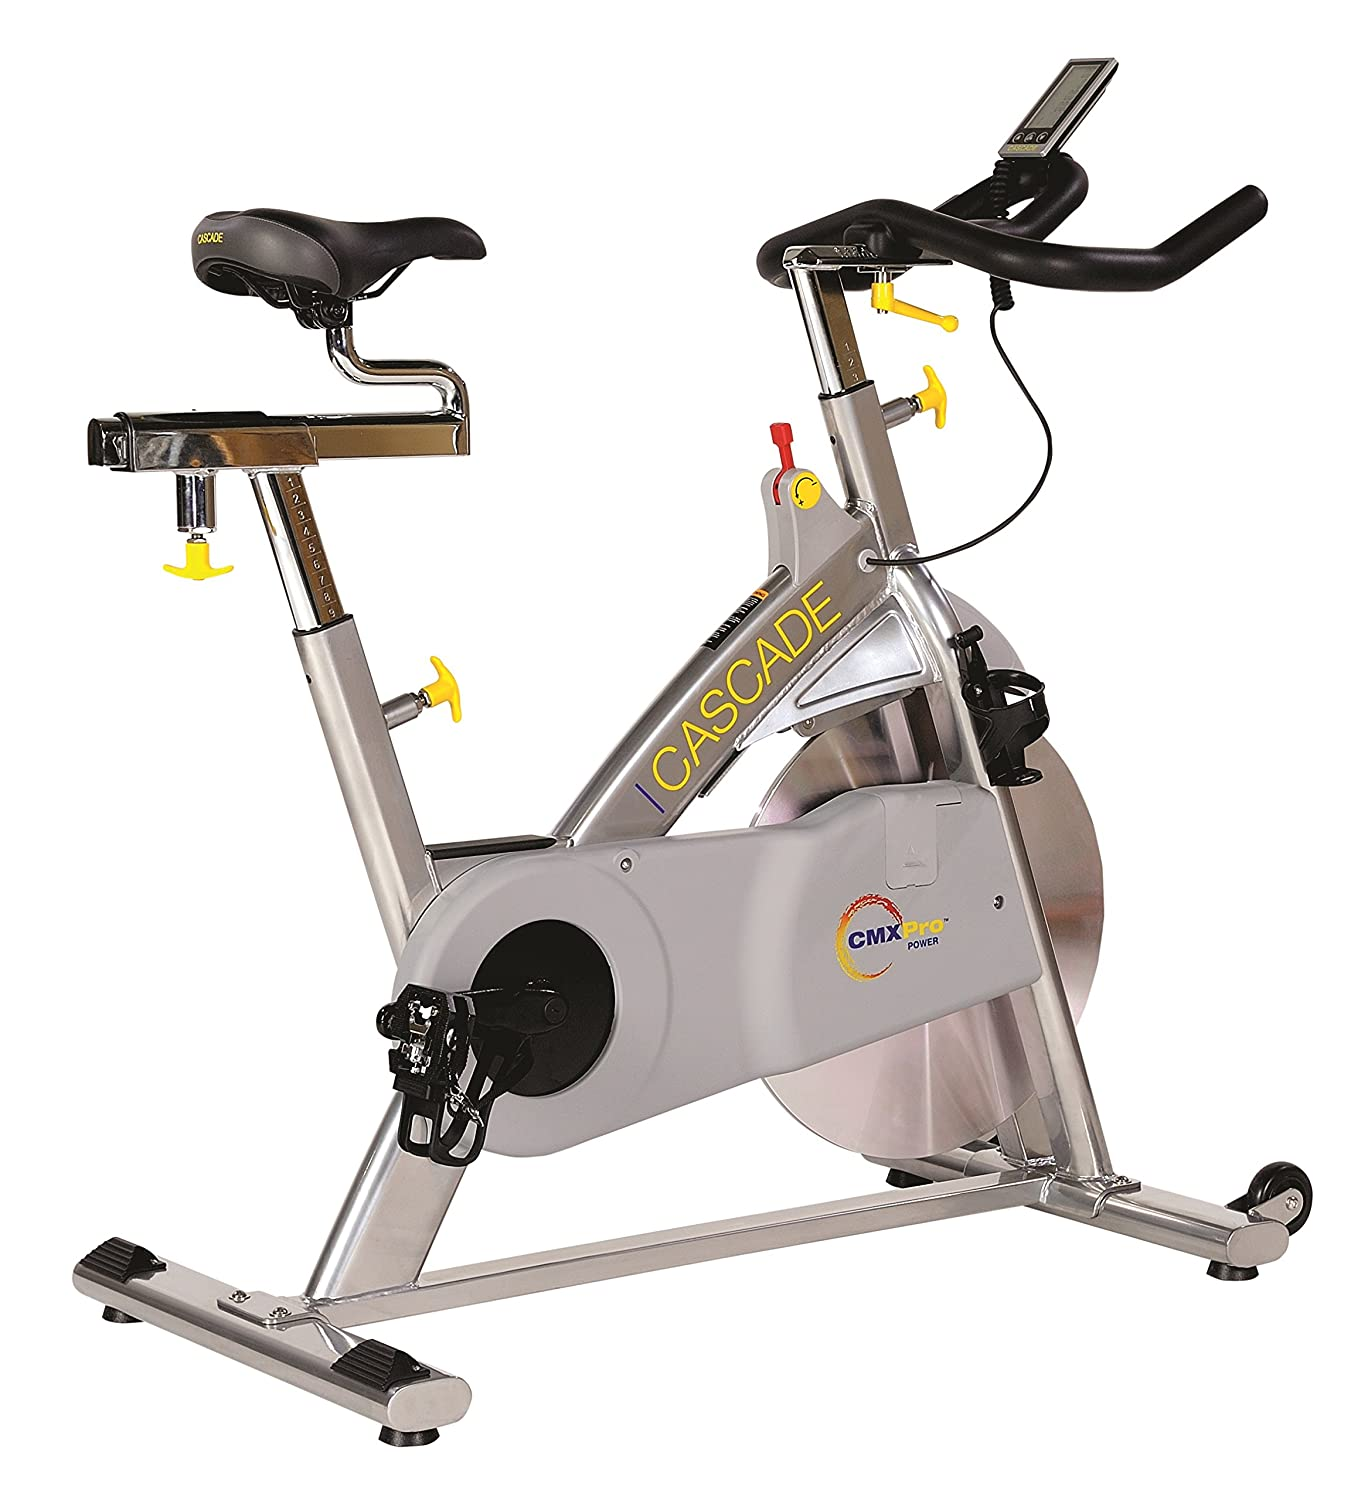 Cascade CMXPro Power Indoor Cycling Exercise Bike